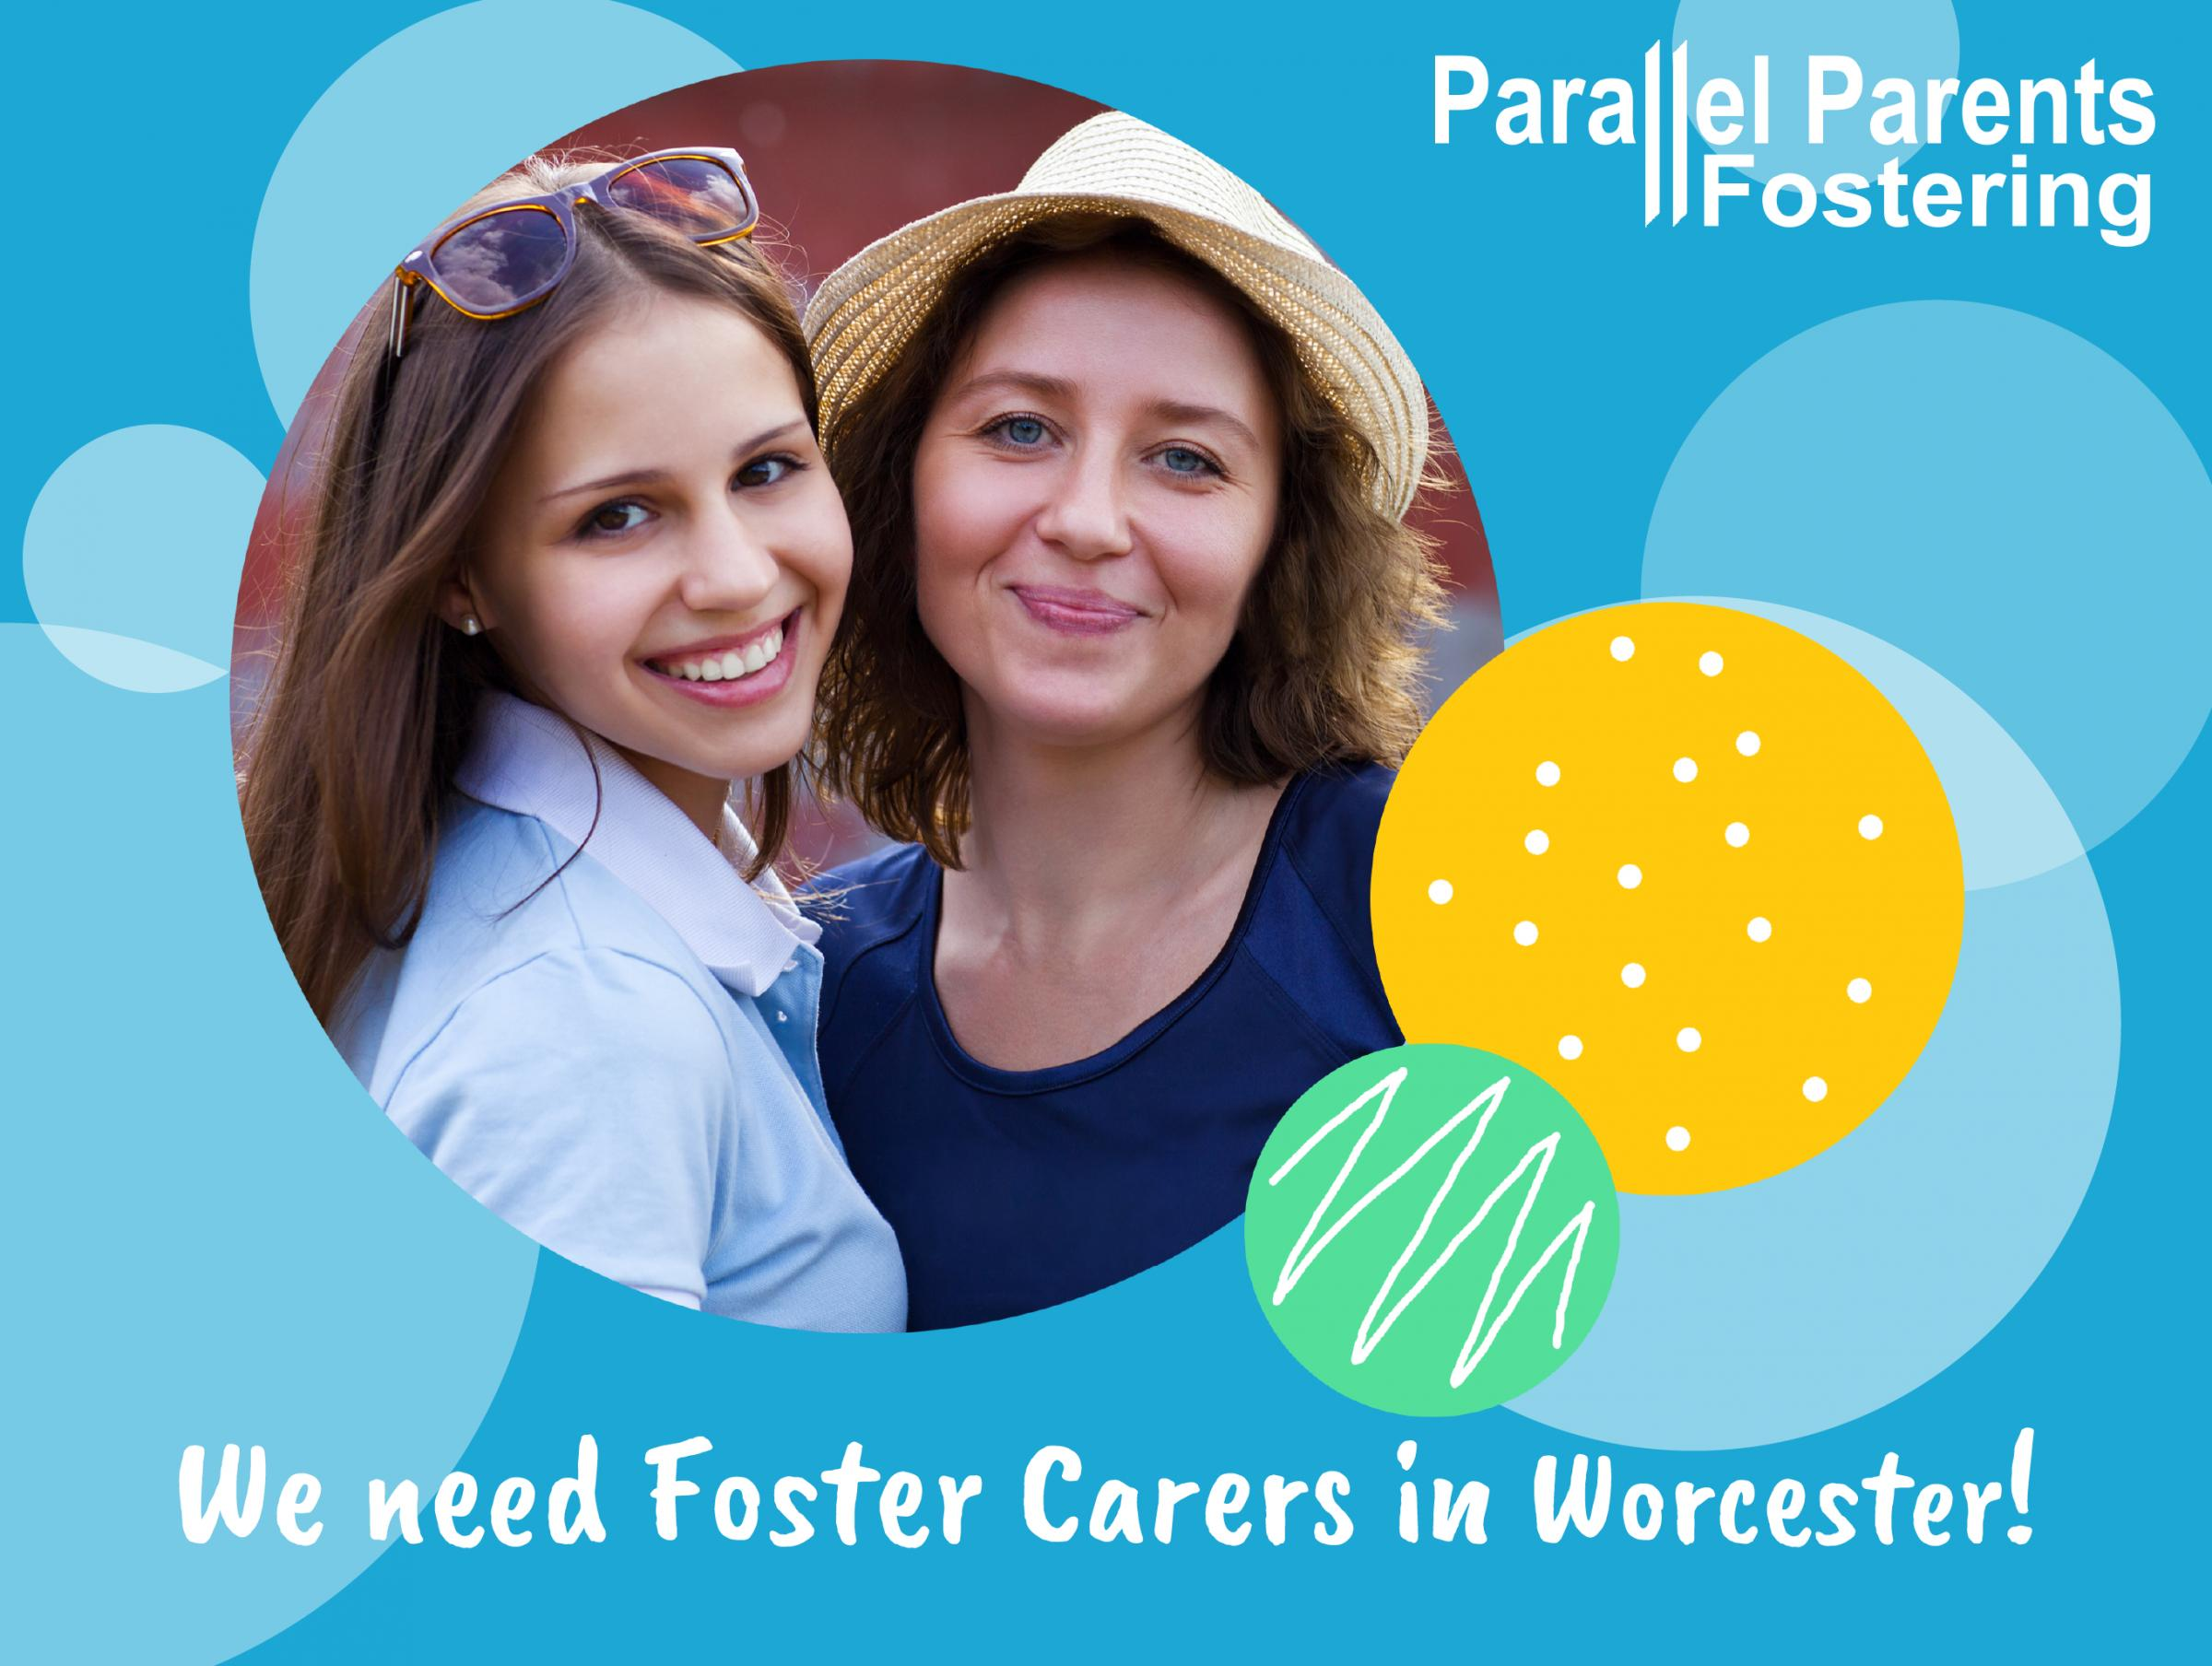 Parallel Parents Fostering Service